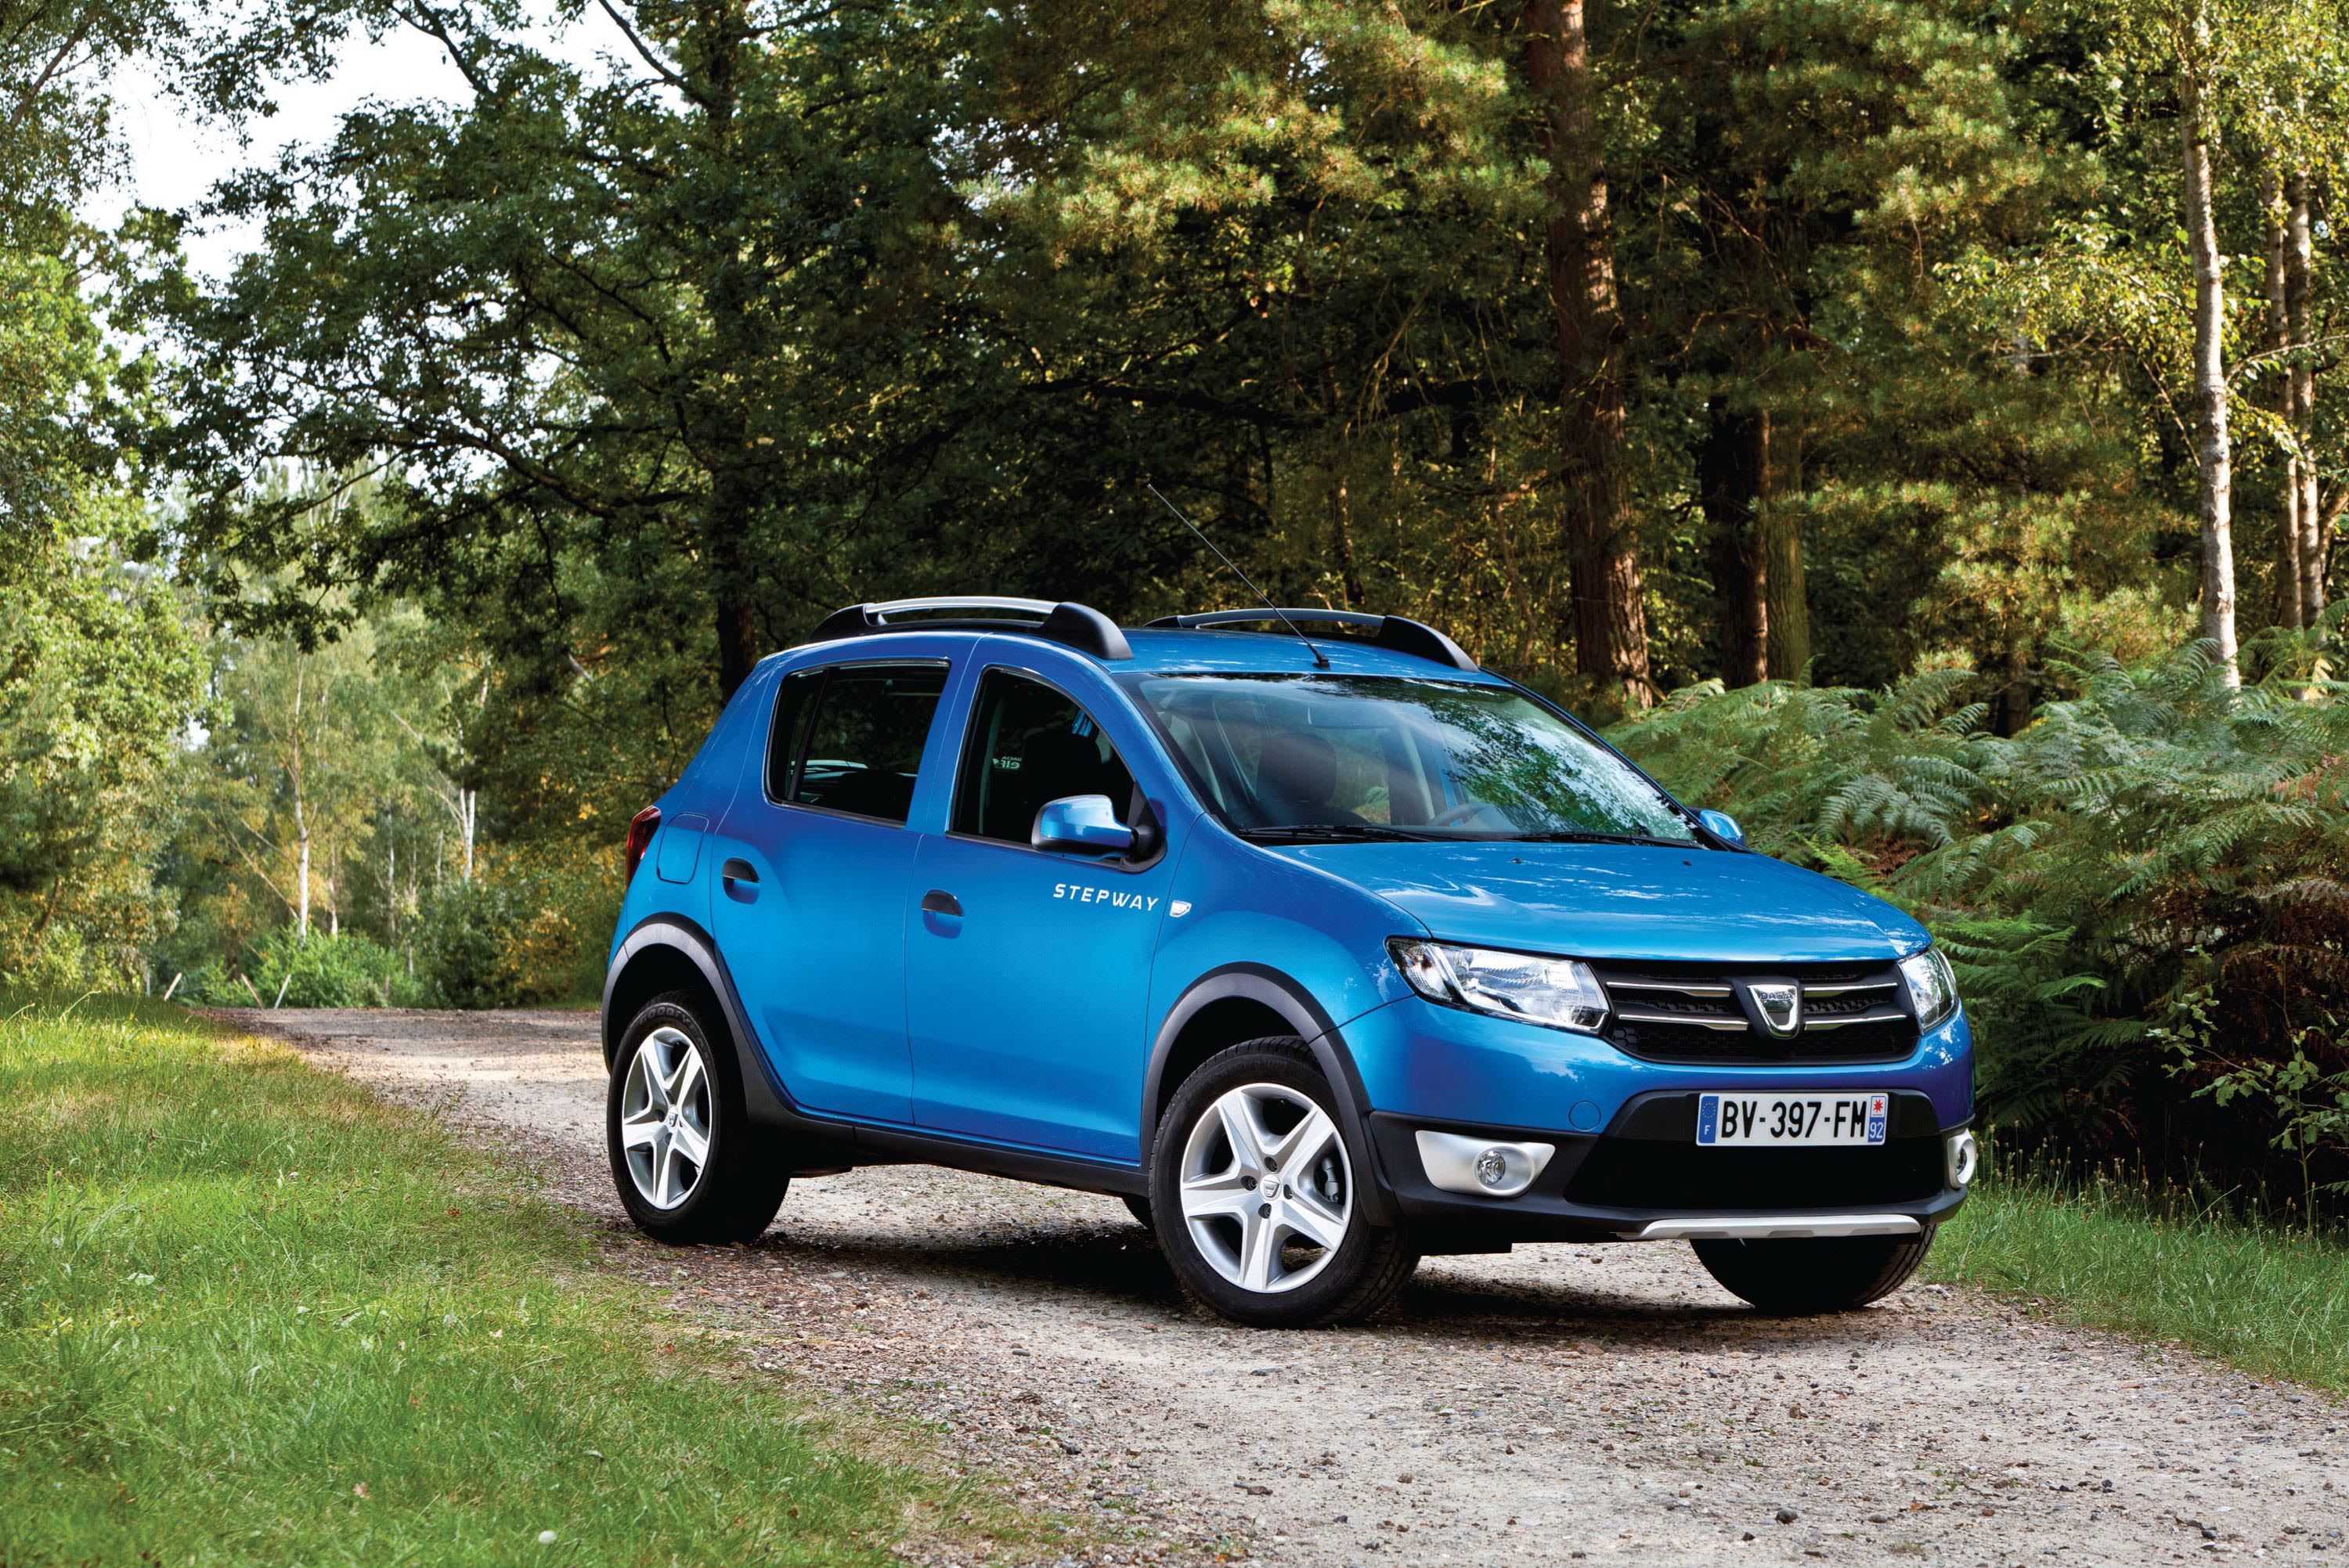 2013 dacia sandero stepway uk price 7 995. Black Bedroom Furniture Sets. Home Design Ideas